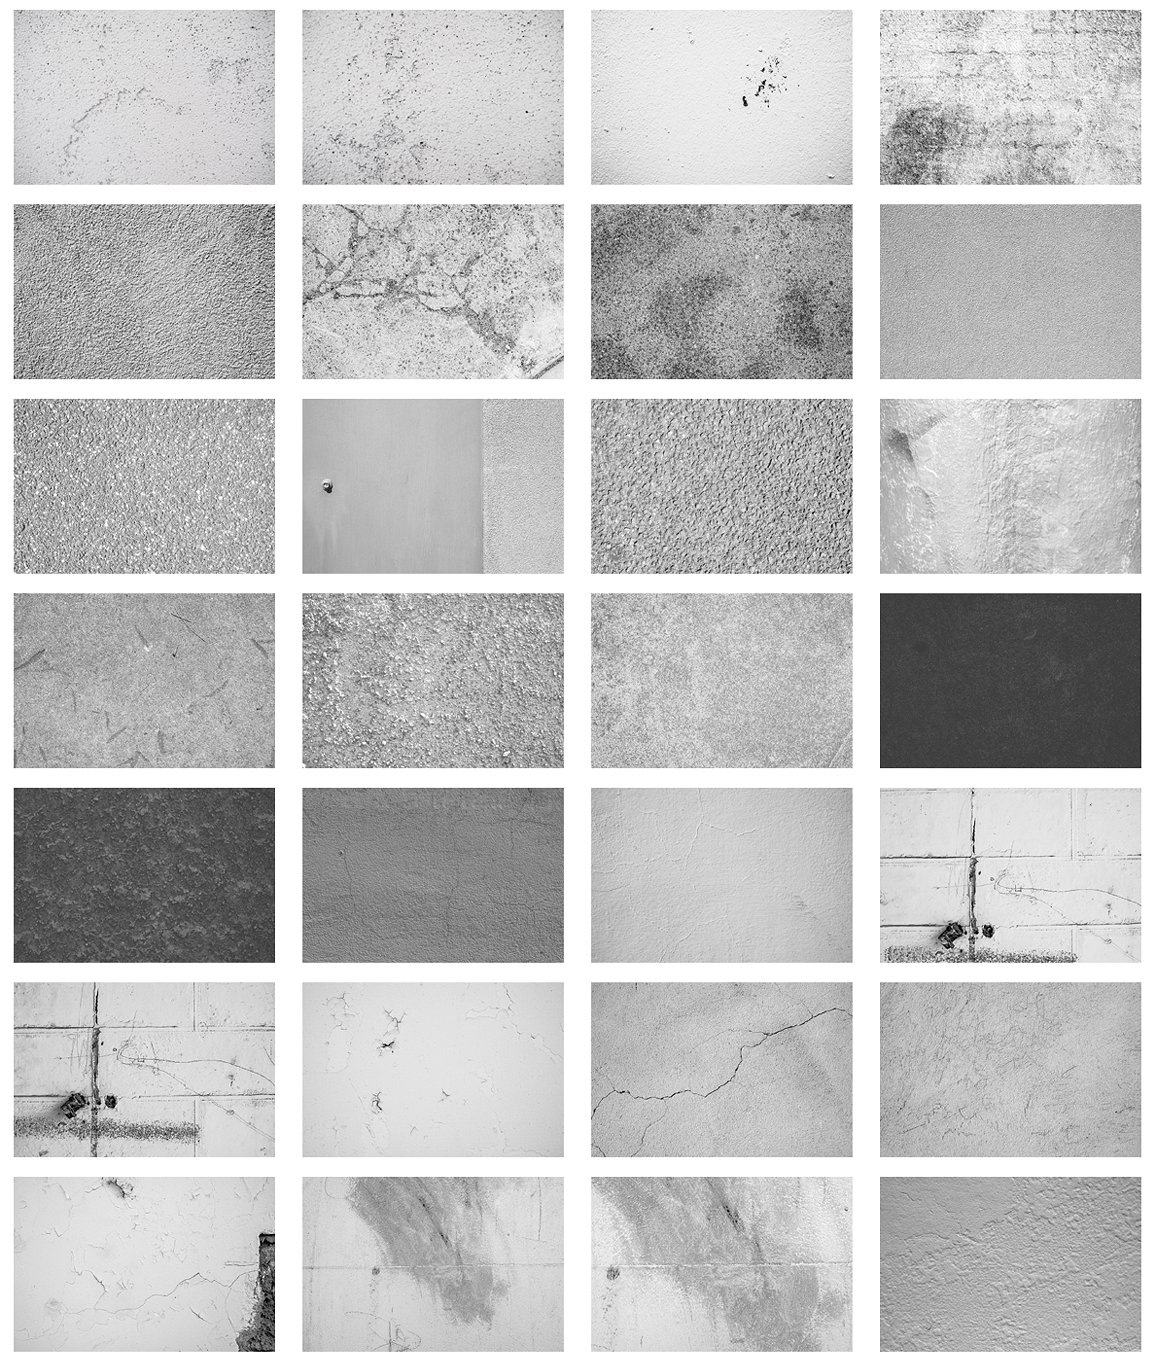 50 Cement Textures Mega Pack example image 2